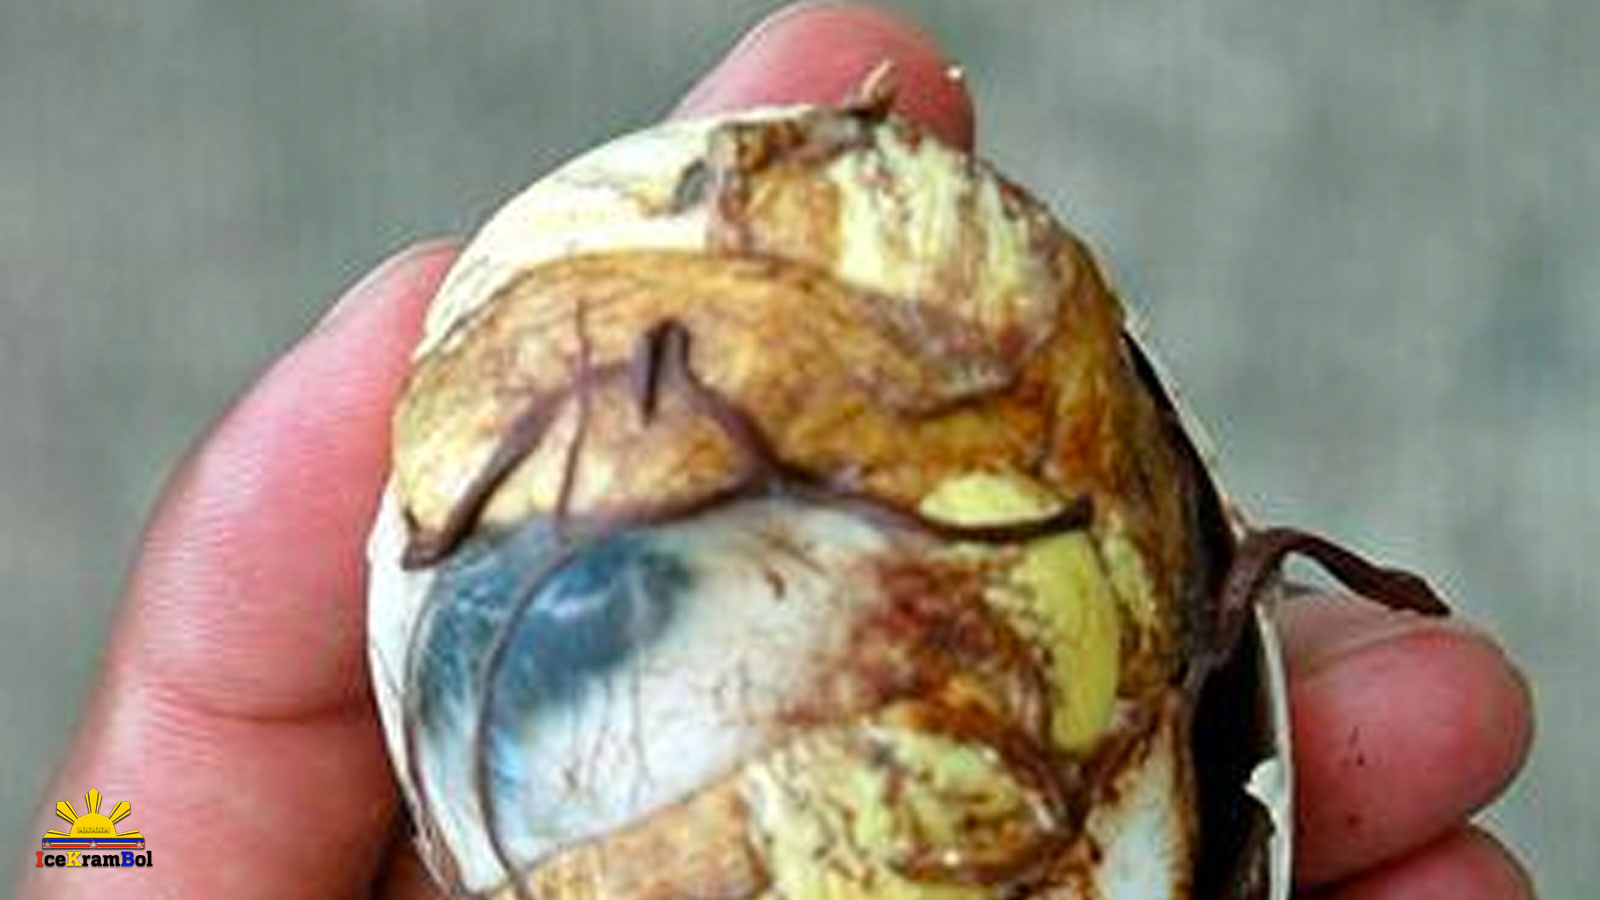 Balut (Broiled Duck Egg)